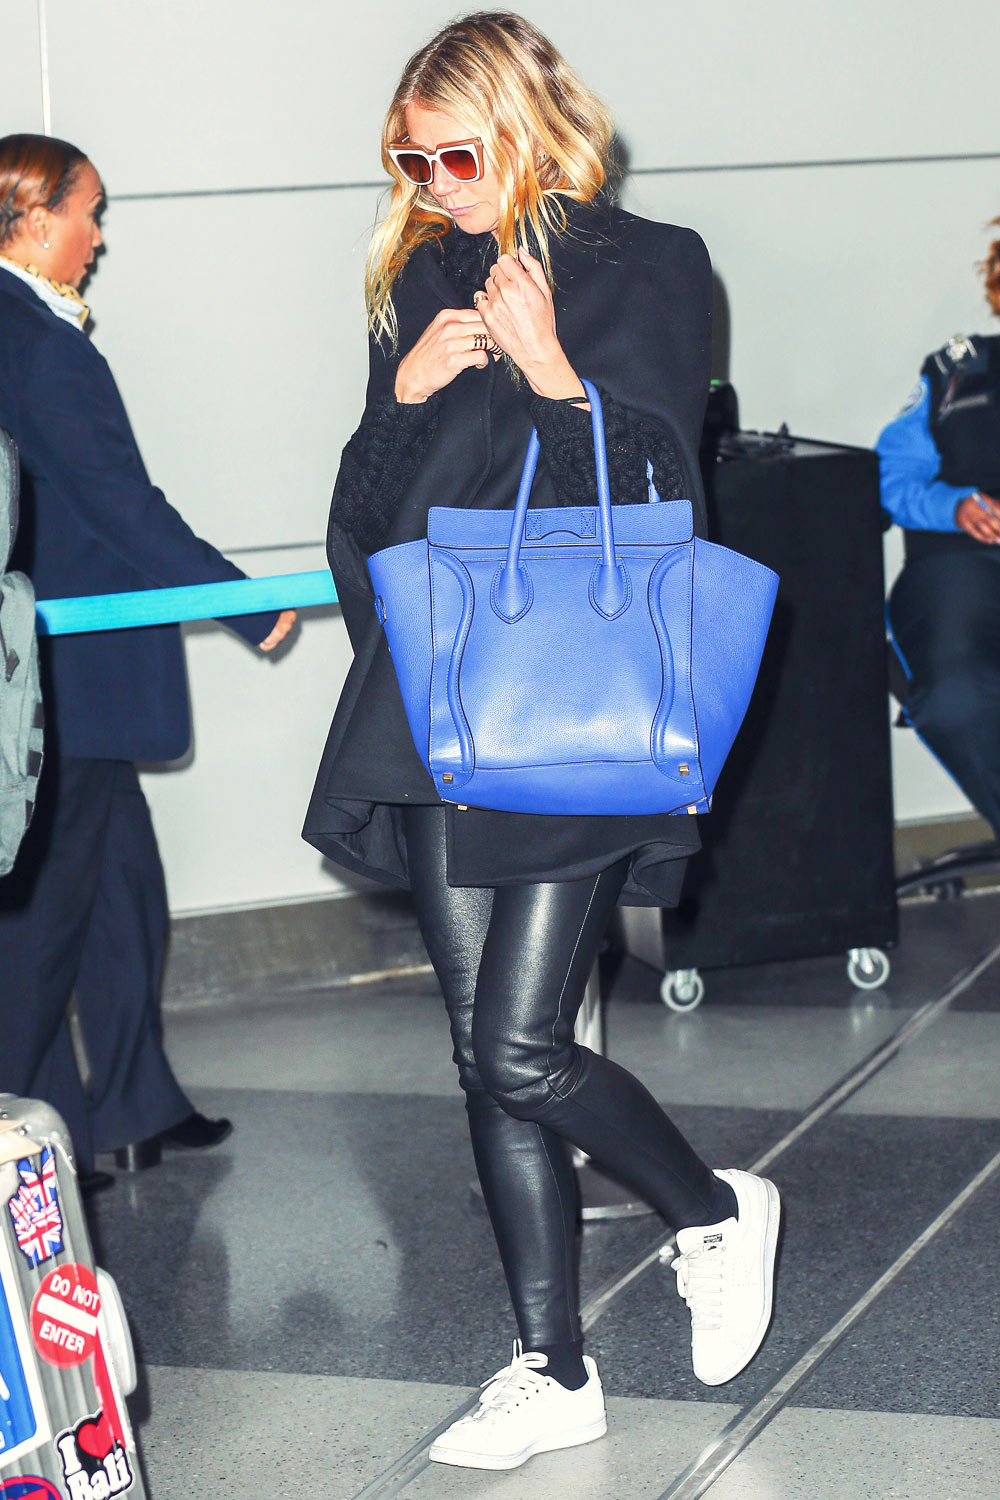 Gwyneth Paltrow At Jfk Airport Leather Celebrities